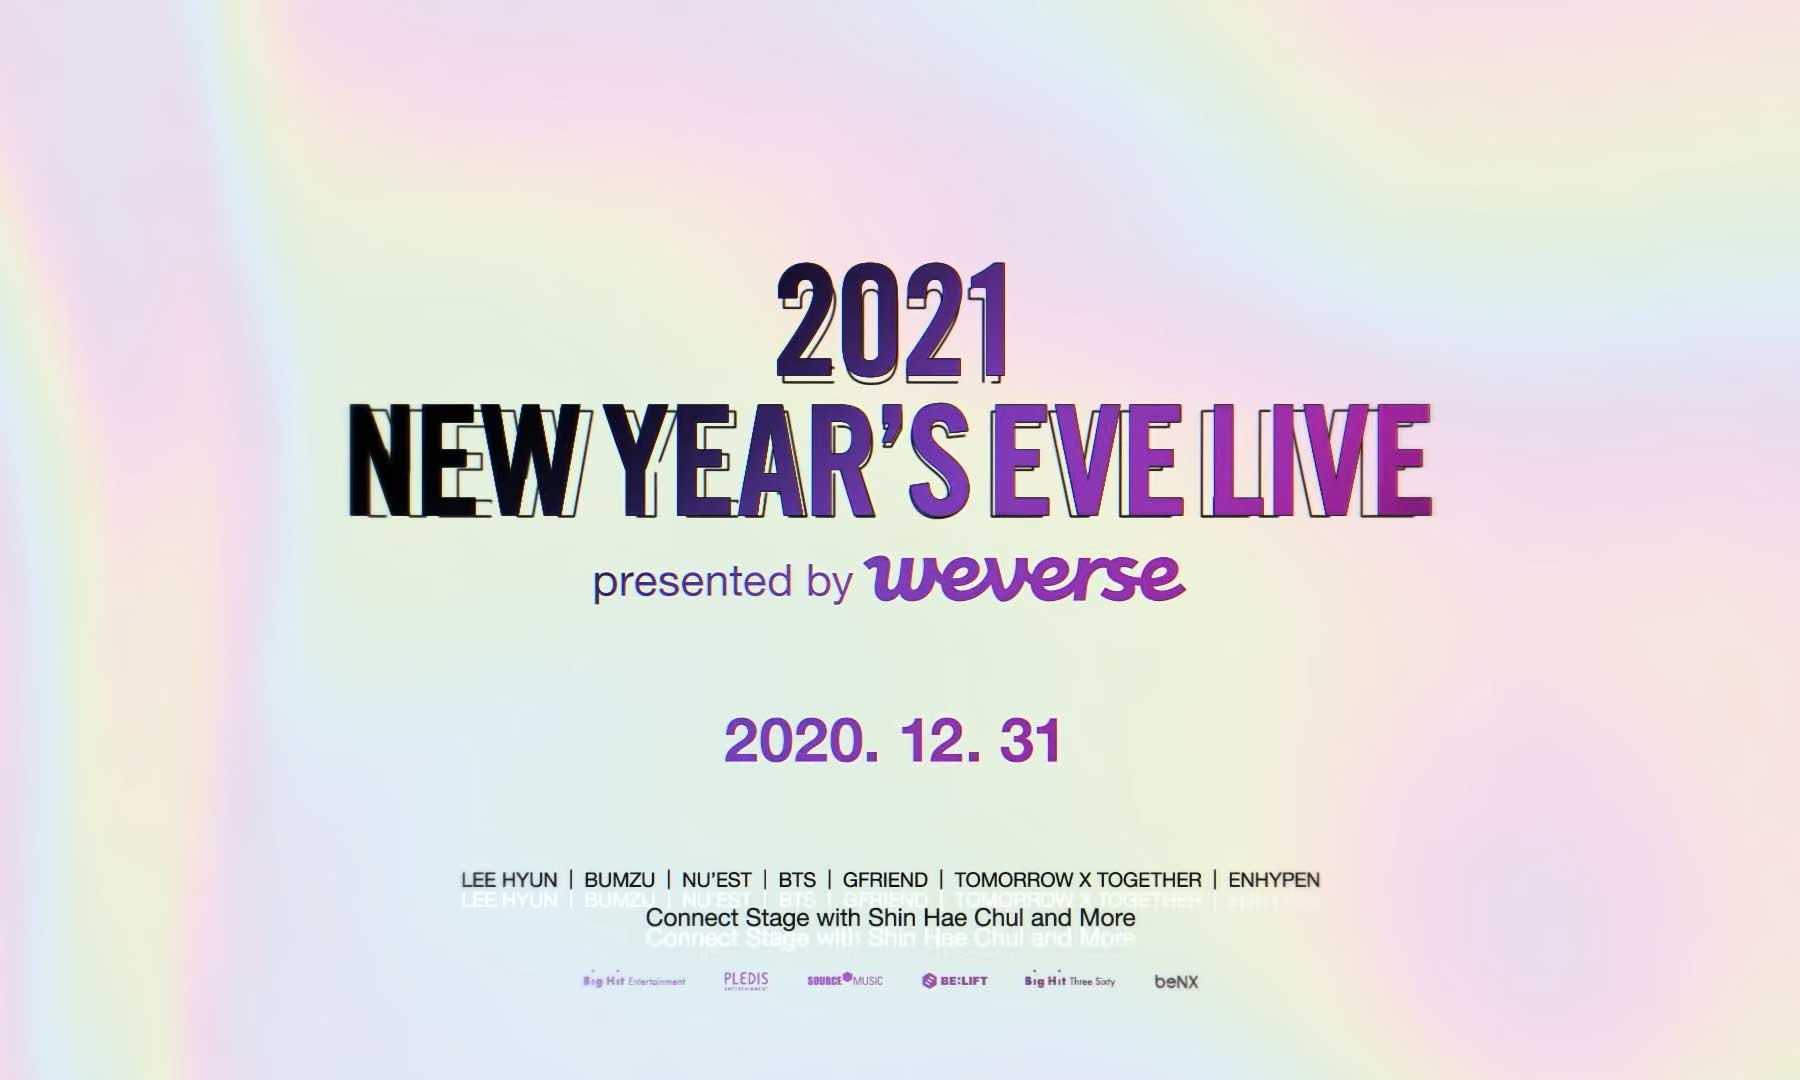 2021-New-Year's-Eve